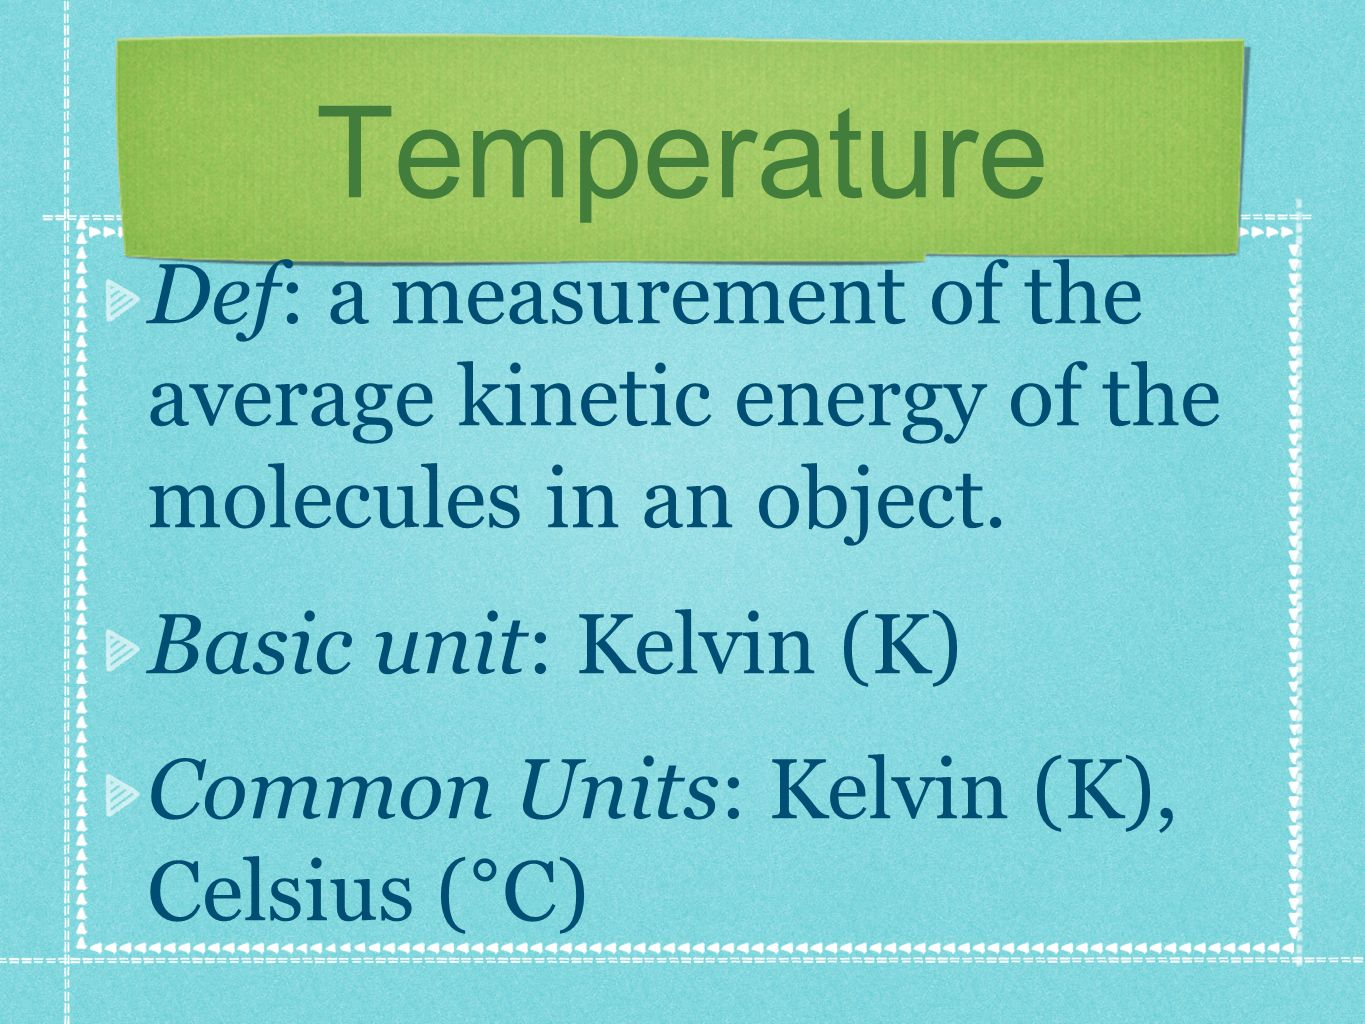 Temperature Def: a measurement of the average kinetic energy of the molecules in an object.